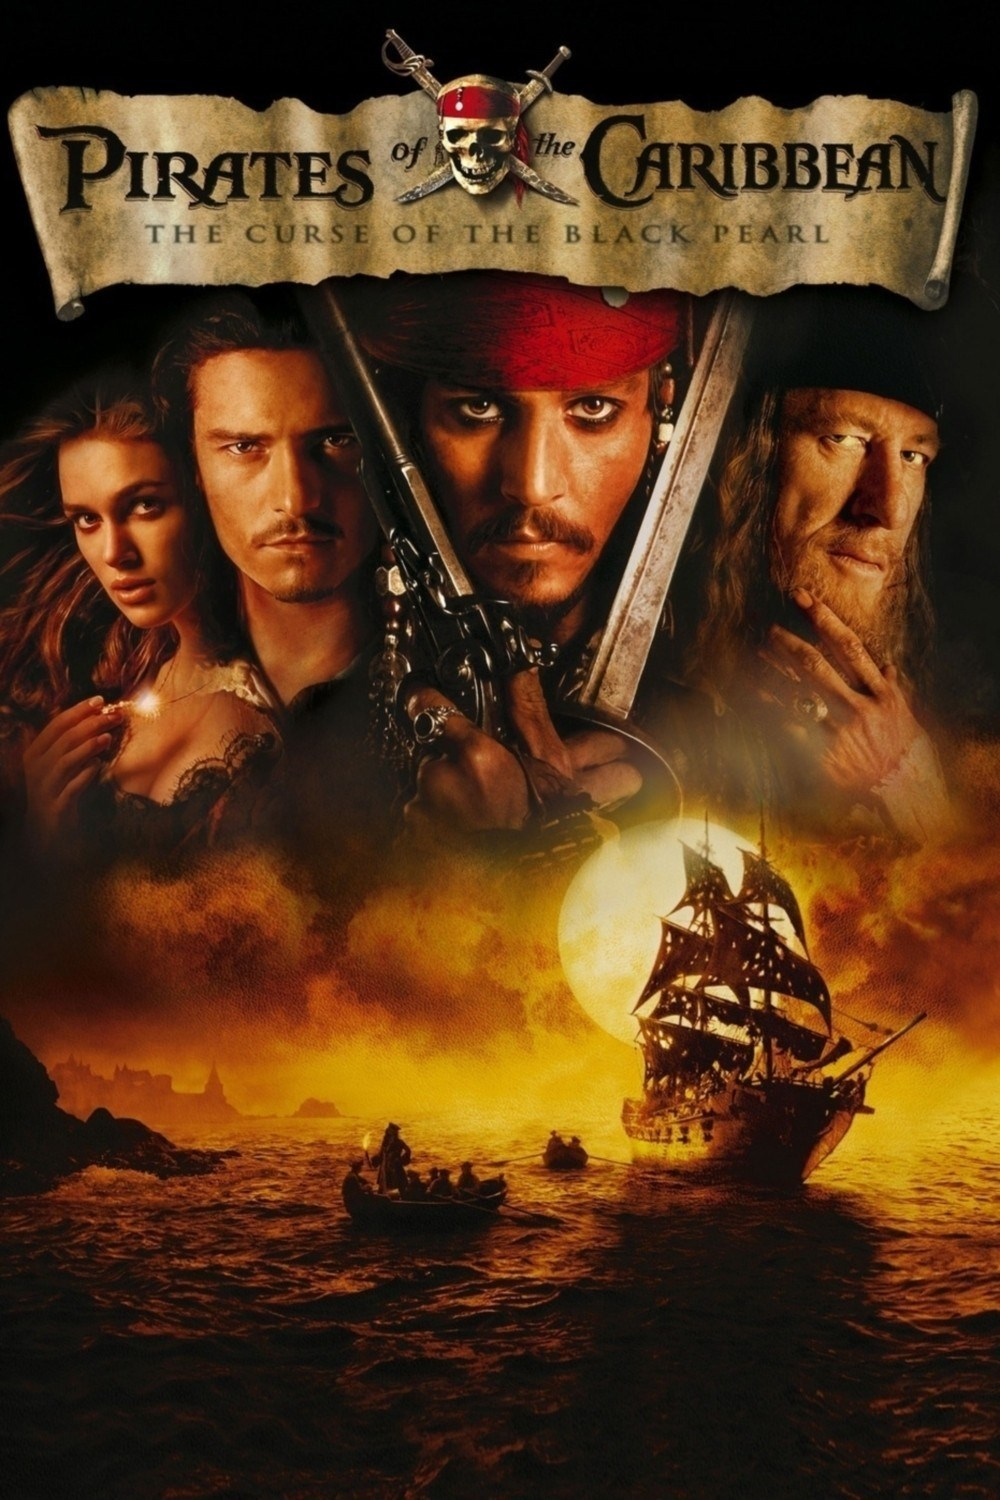 Nonton Film Pirates of the Caribbean 1 : The Curse of the Black Pearl (2003)